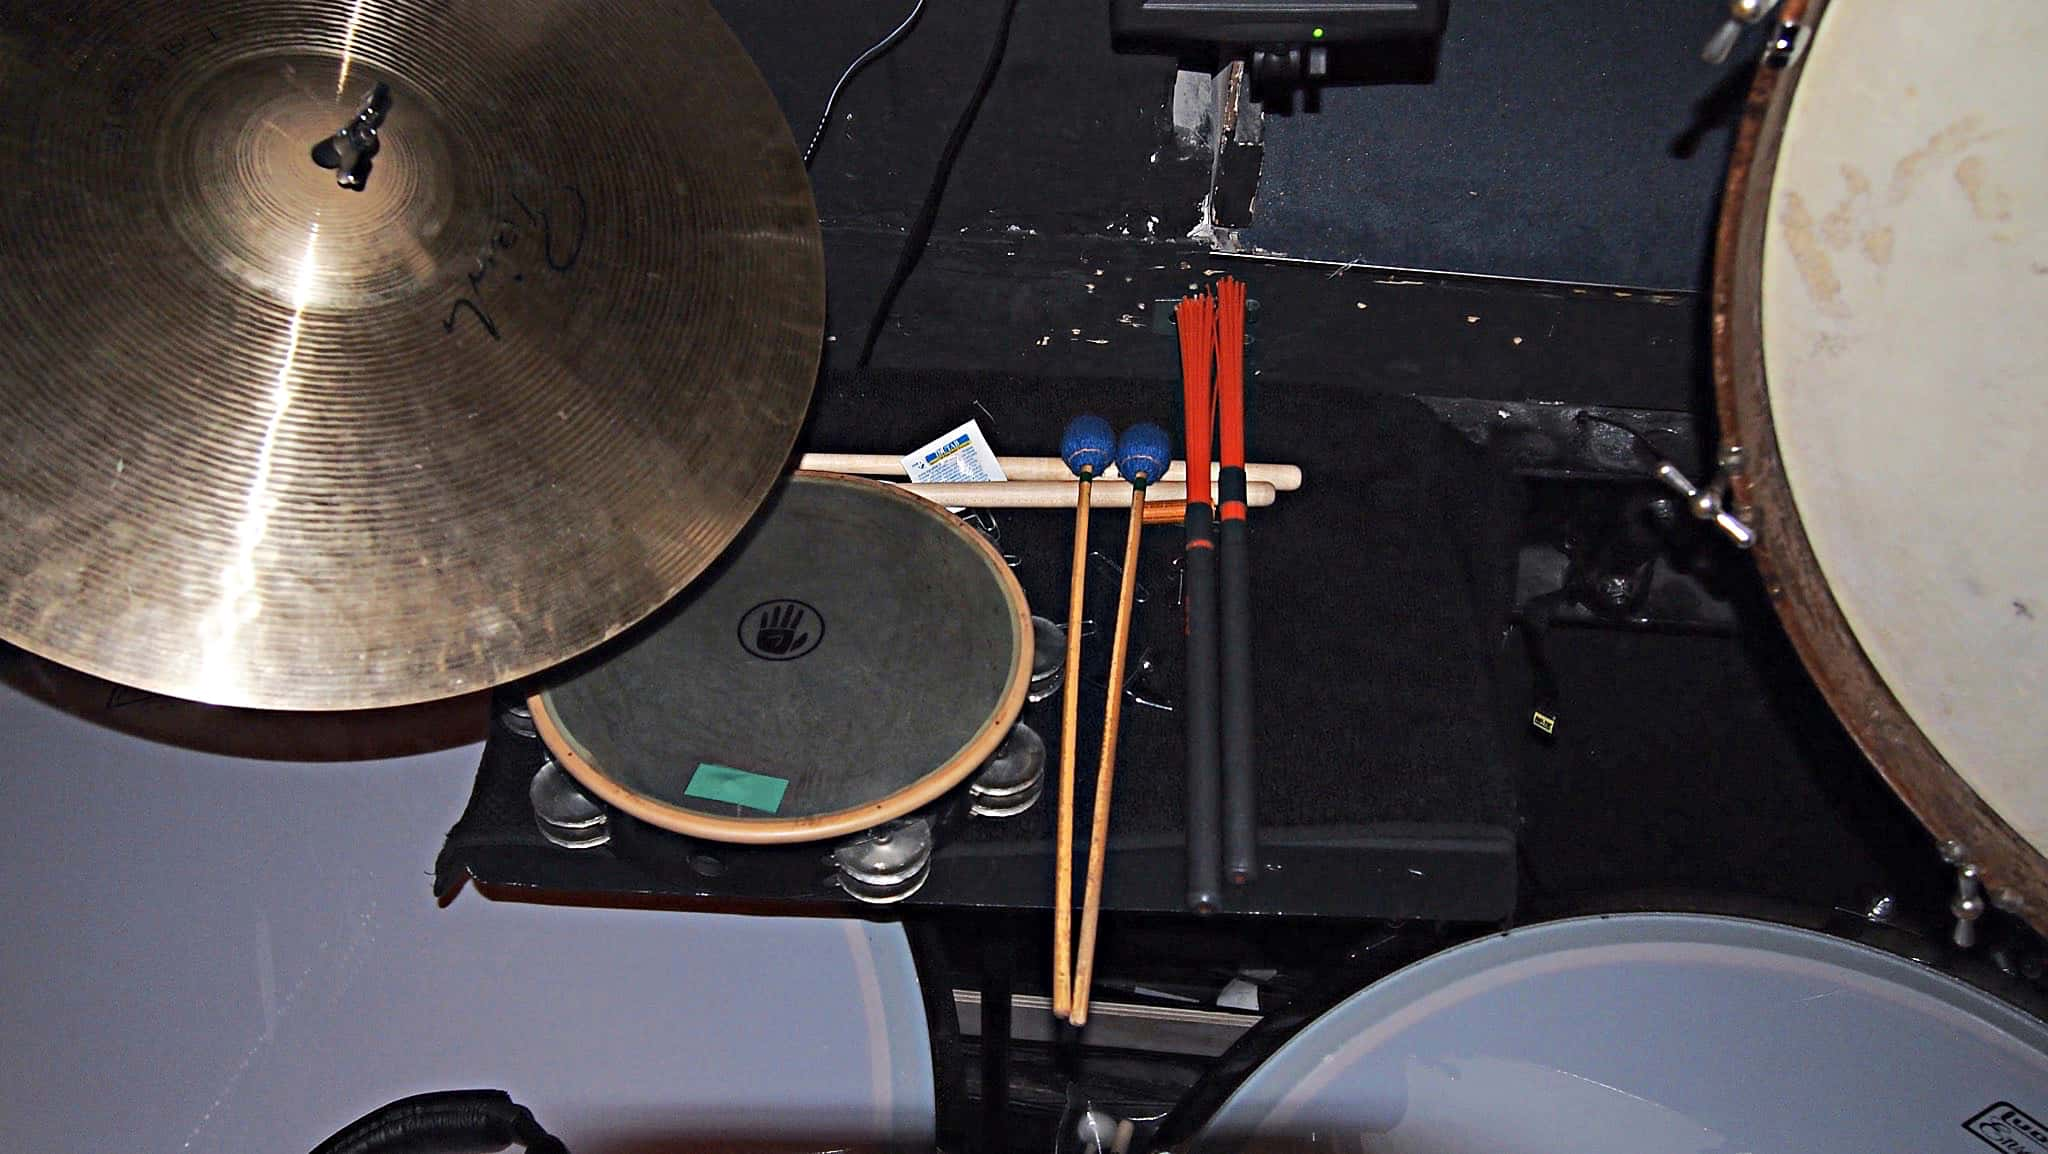 Paul Hansen's setup for Ragtime at the 5th Avenue Theatre in Seattle, Washington.